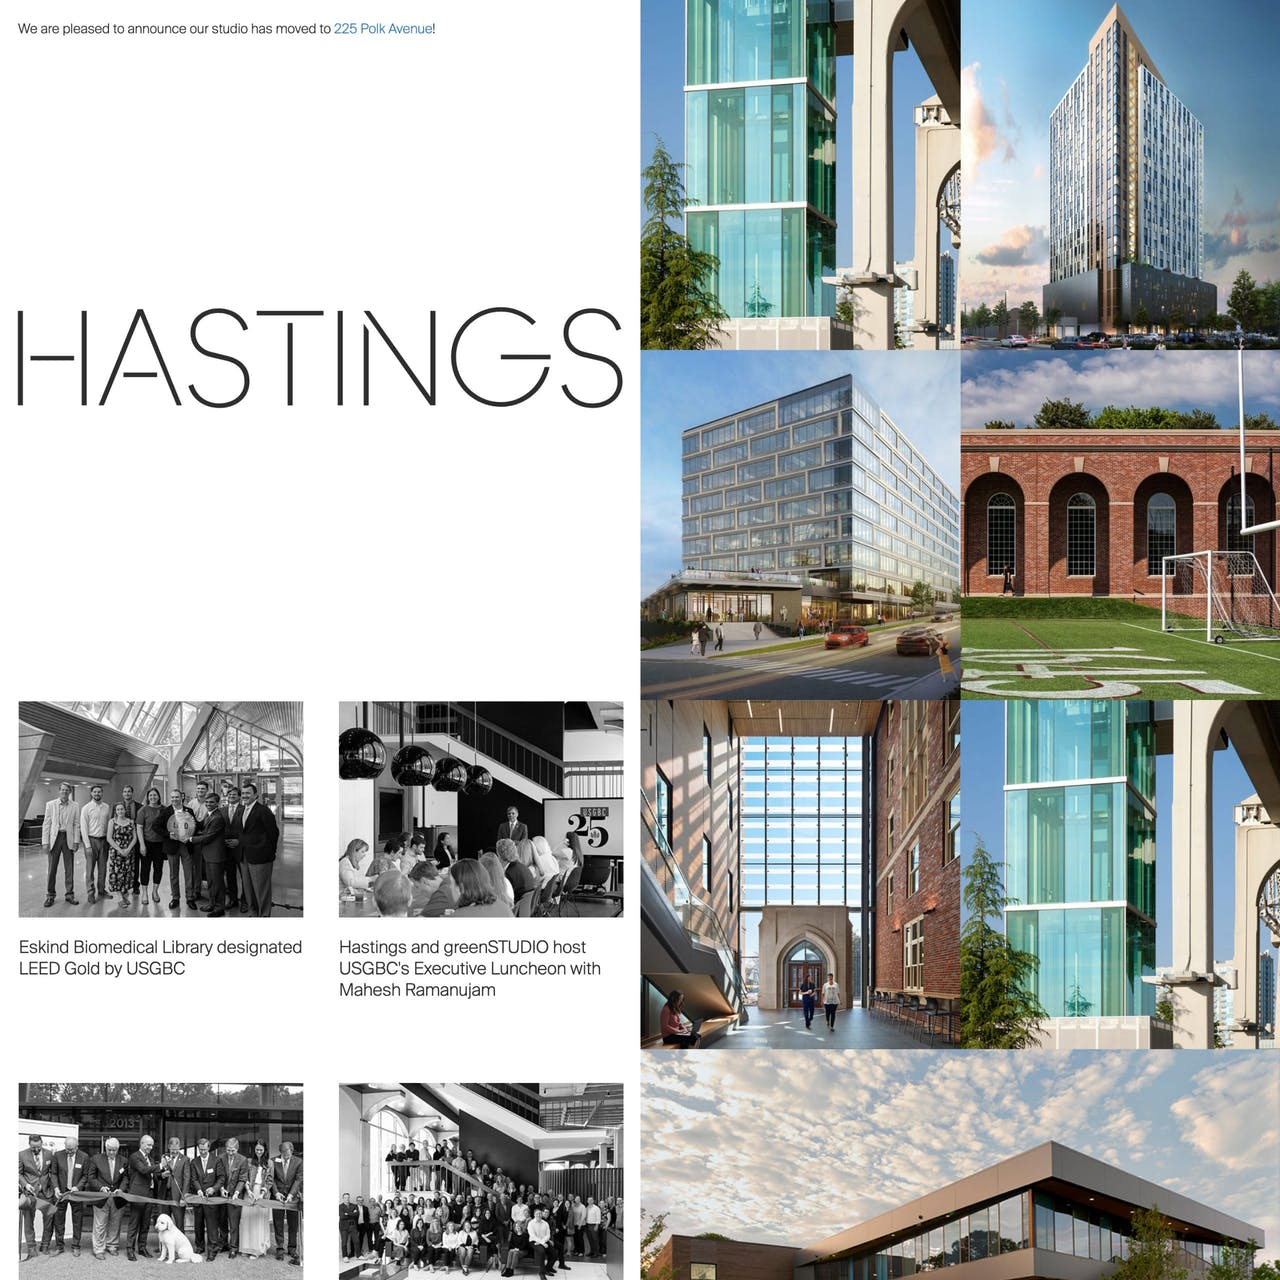 Hastings Architecture Website Screenshot